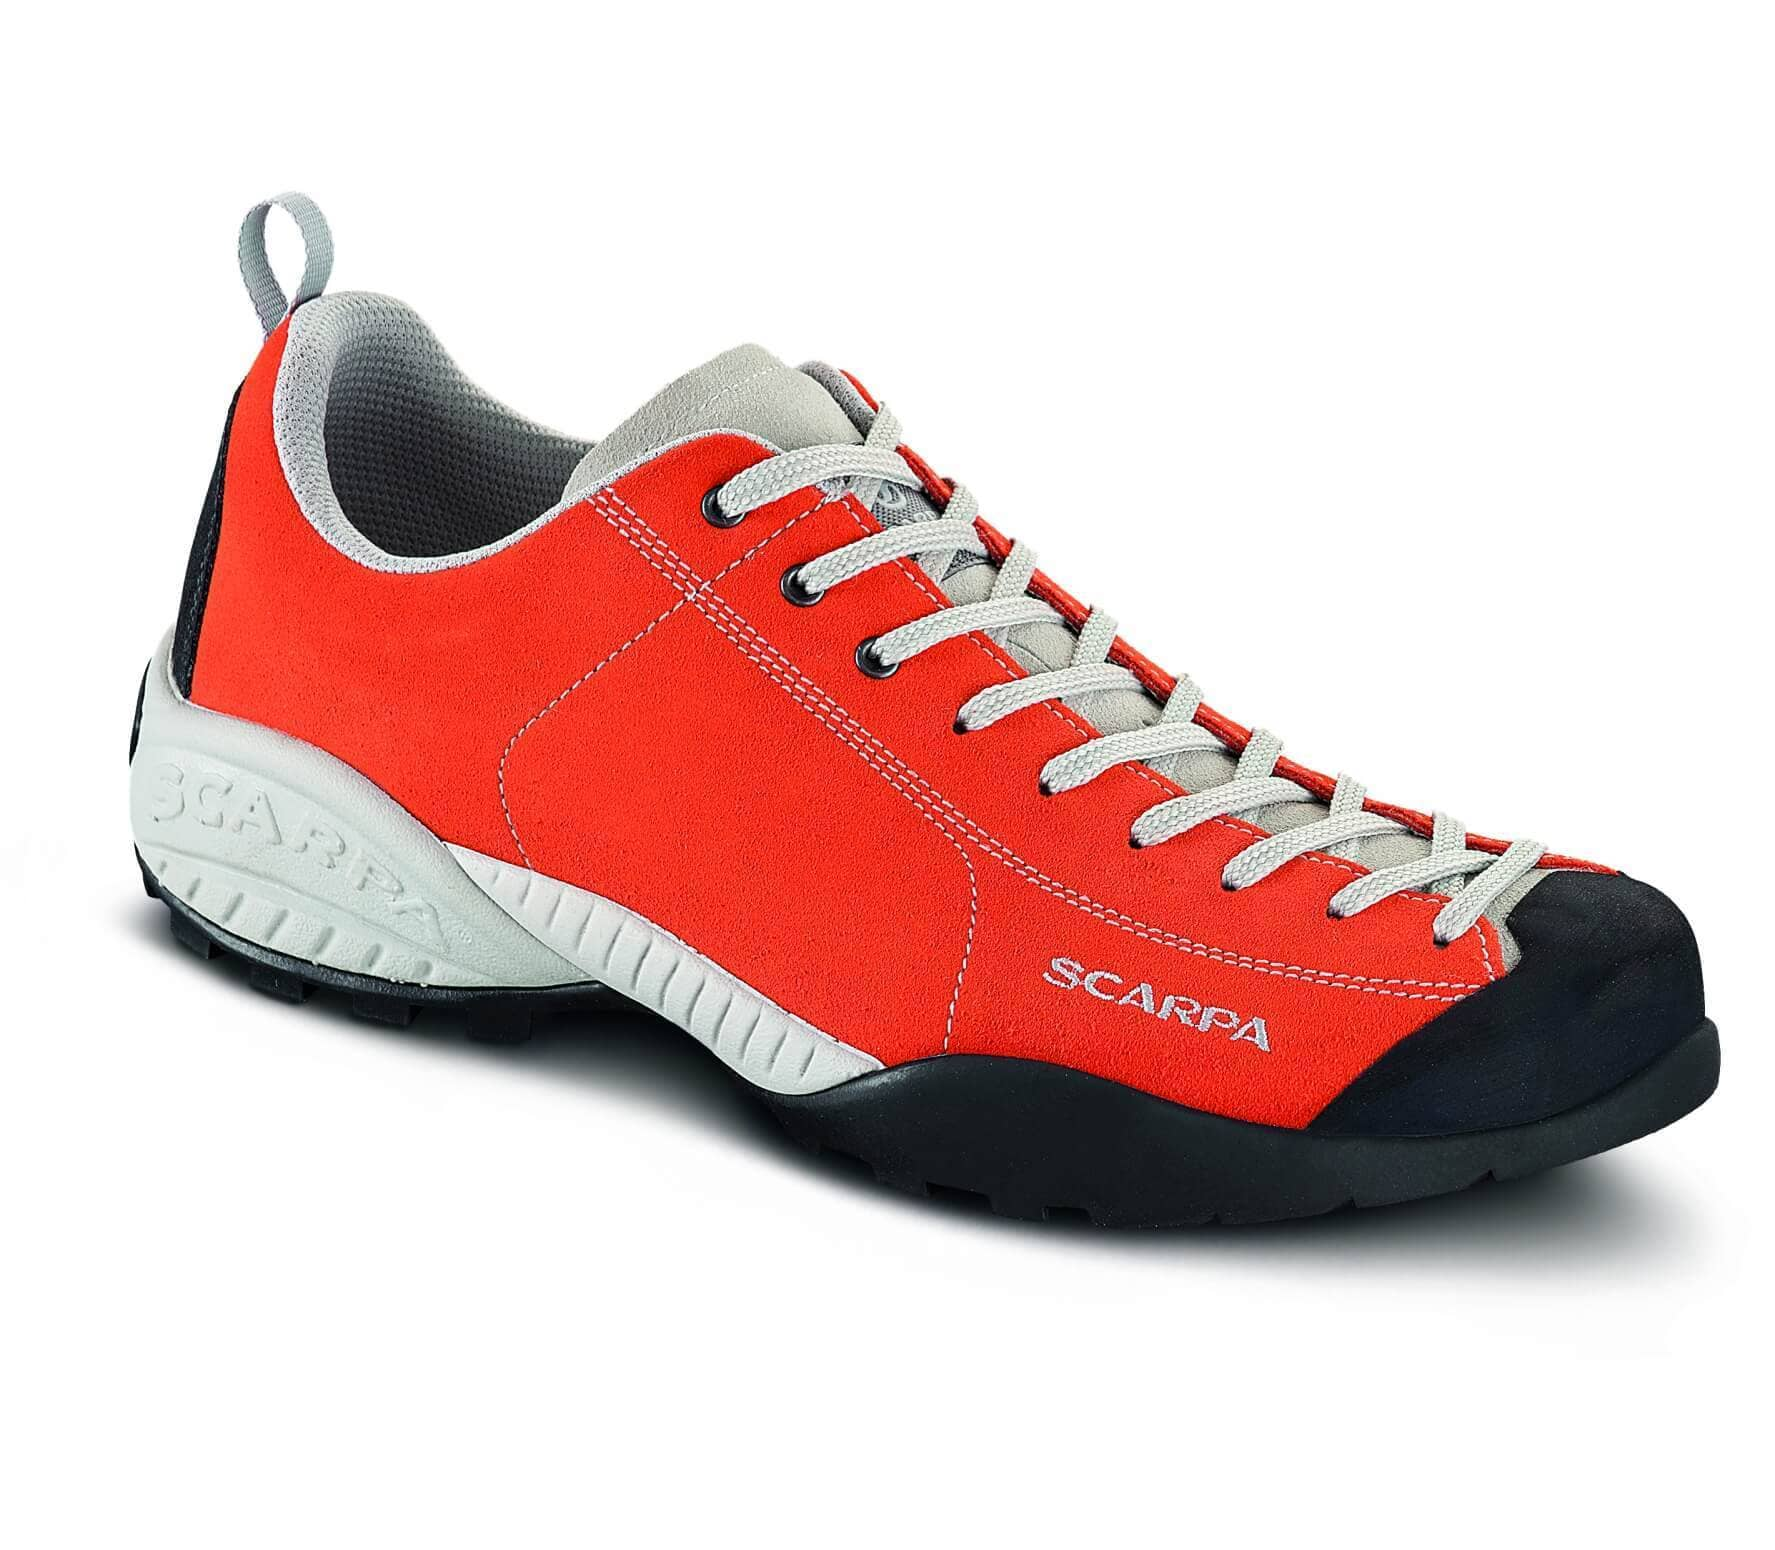 Chaussures Scarpa Mojito femme ZF8lTHrd